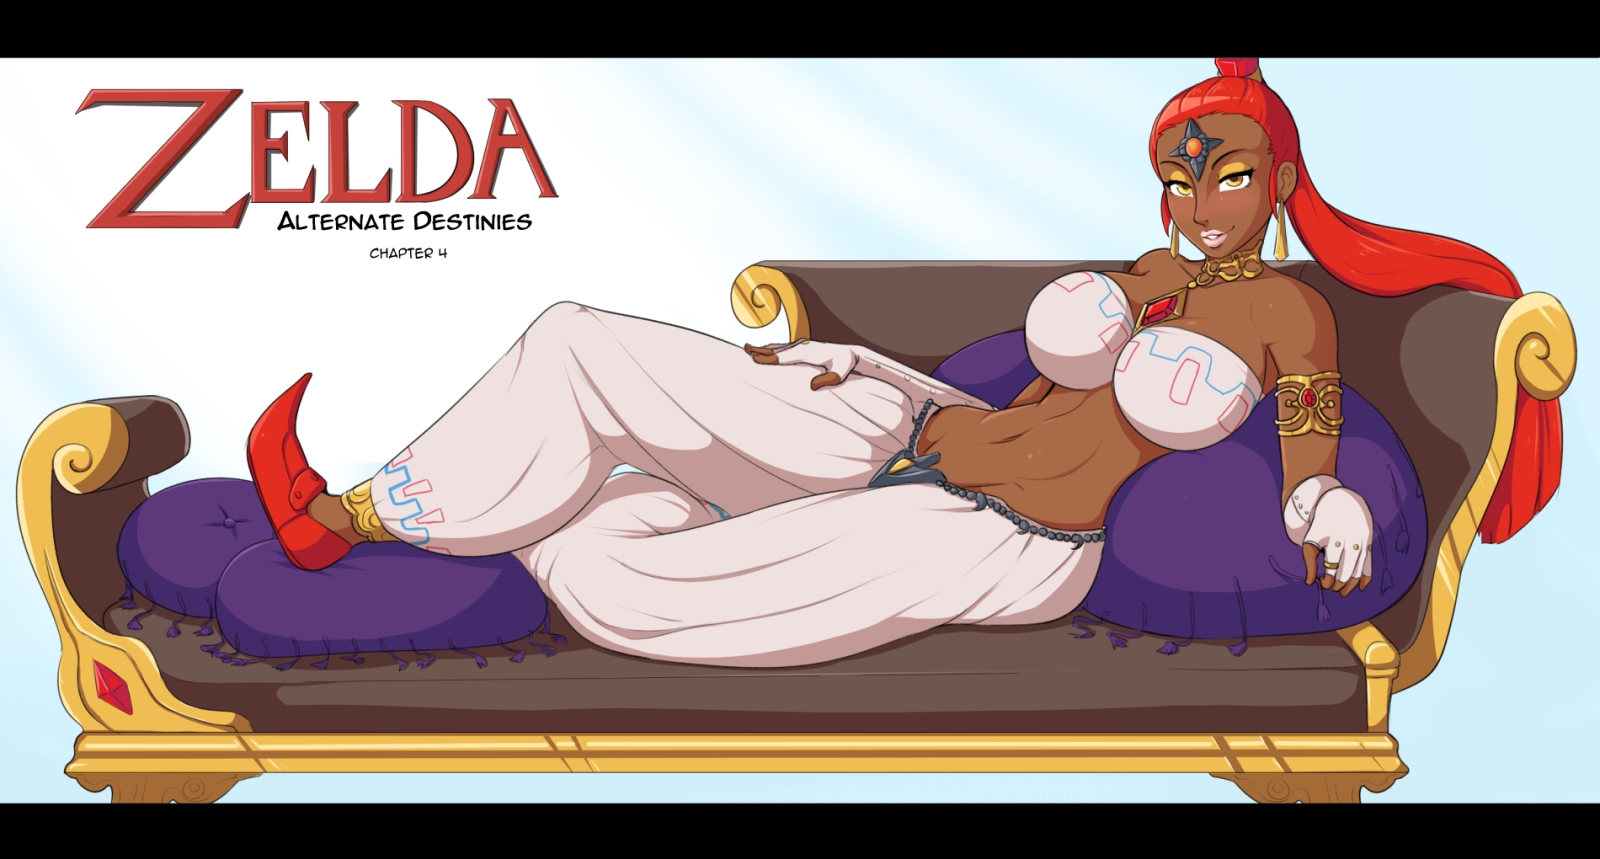 Zelda Alternate Destinies- Afrobull porn comics 8 muses